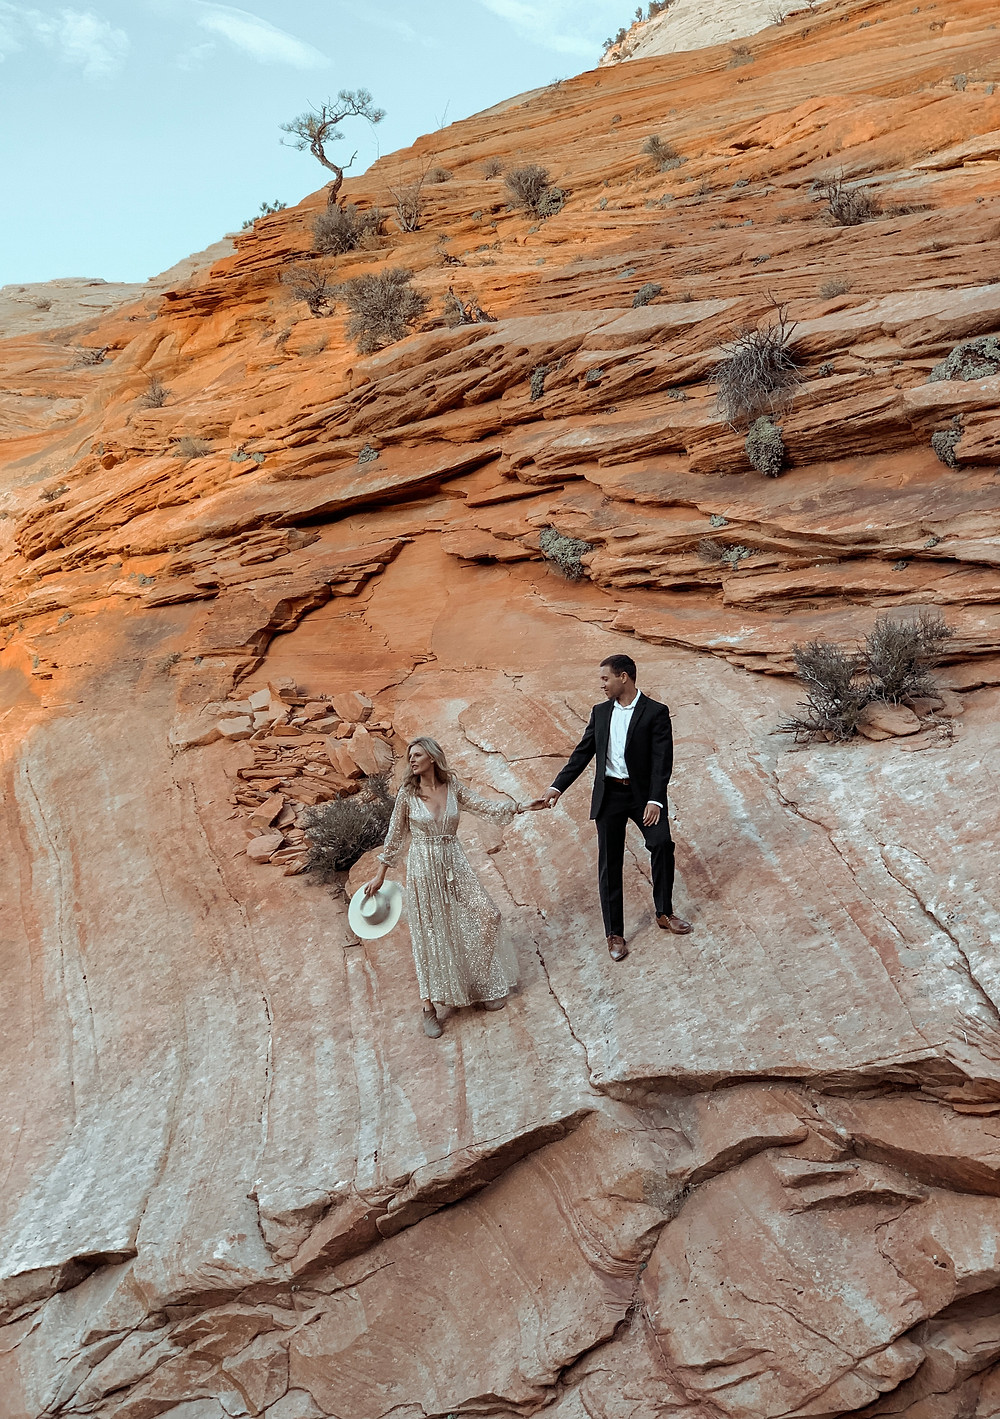 Zion scenic route scaling mountains dressed up couples shot